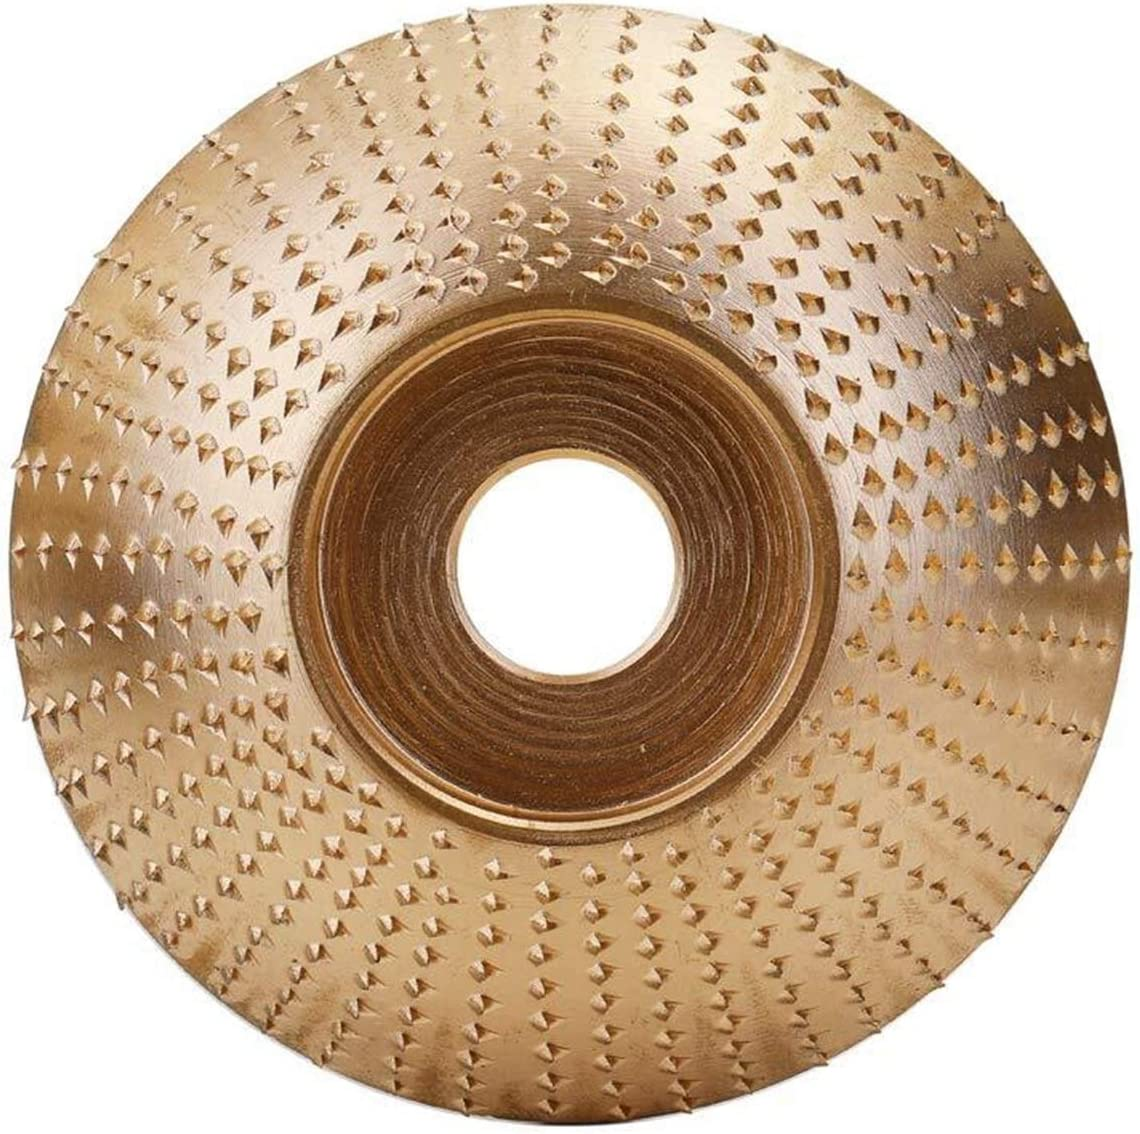 ZGQA-GQA Woodworking Angle Grinding Wheel Woodworking Wood Angle Grinding Wheel Sanding Carving Rotary Tool Abrasive Disc for Angle Grinder Tungsten Carbide Coating Bore Shaping